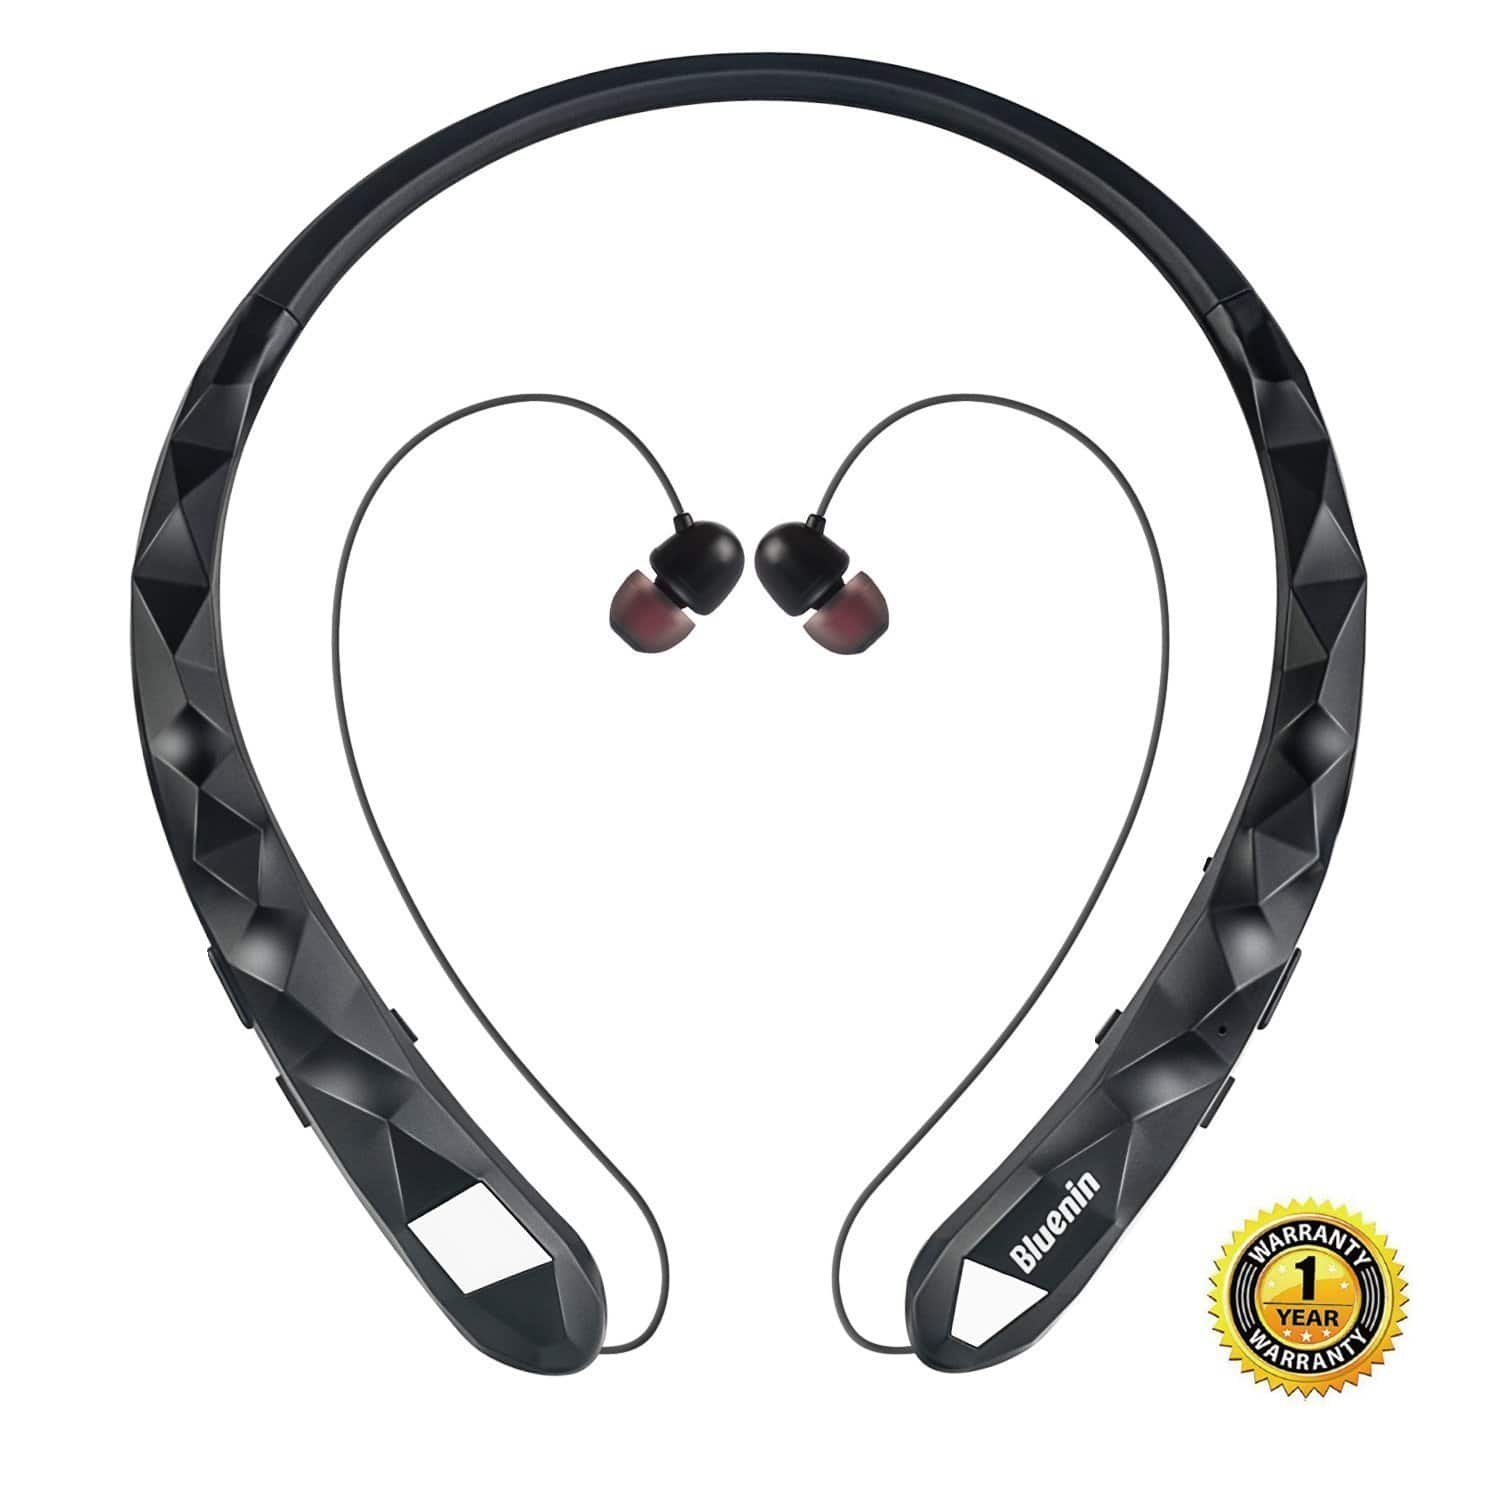 Retractable Bluetooth Neckband Headphones w/ Mic $14.50 @ Amazon + FS